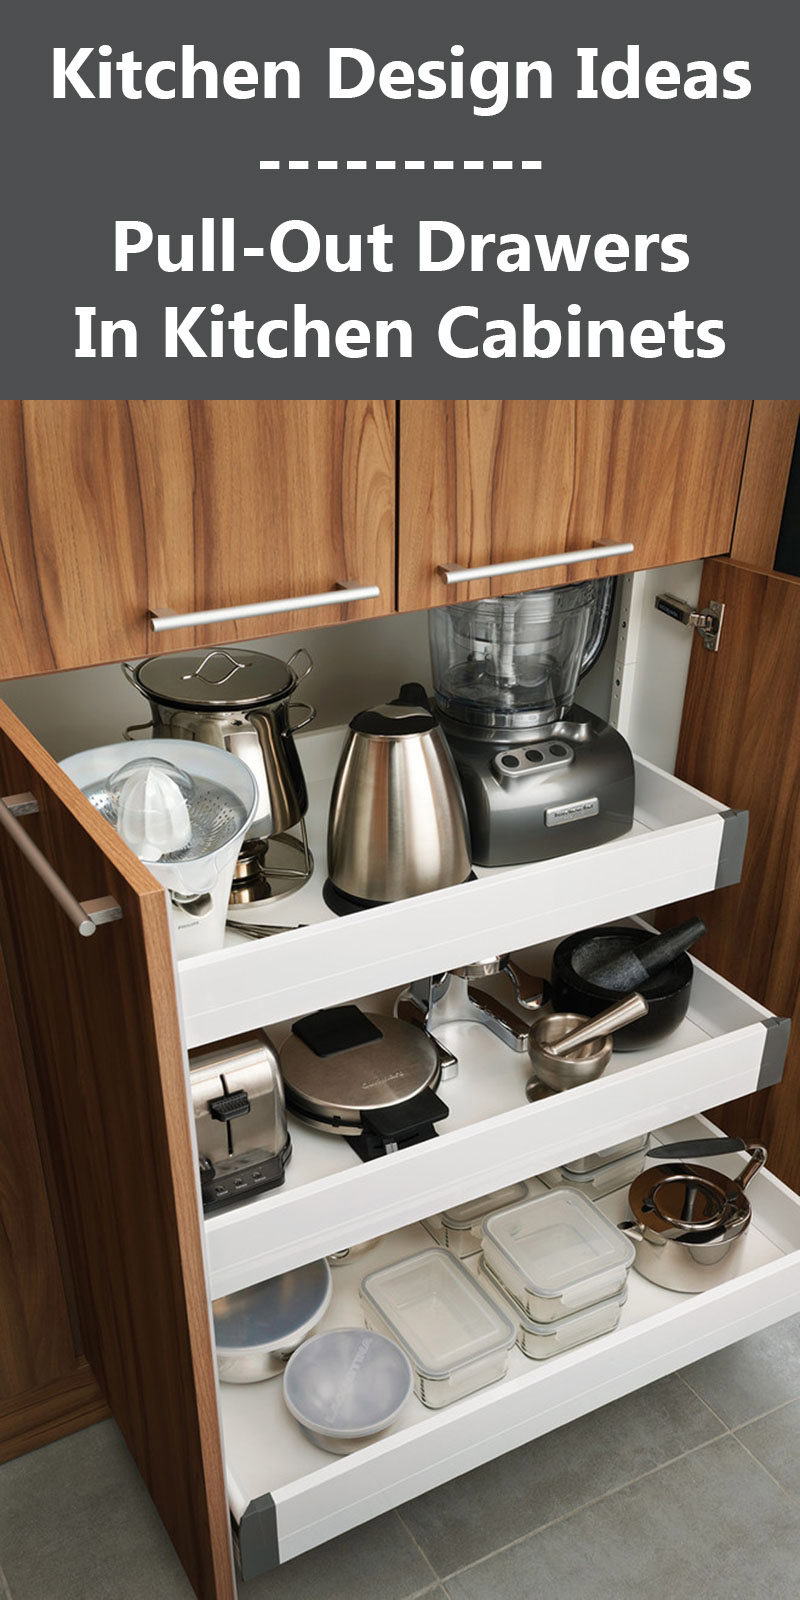 pull out drawers kitchen cabinets kitchen design ideas pull out drawers in kitchen 7600